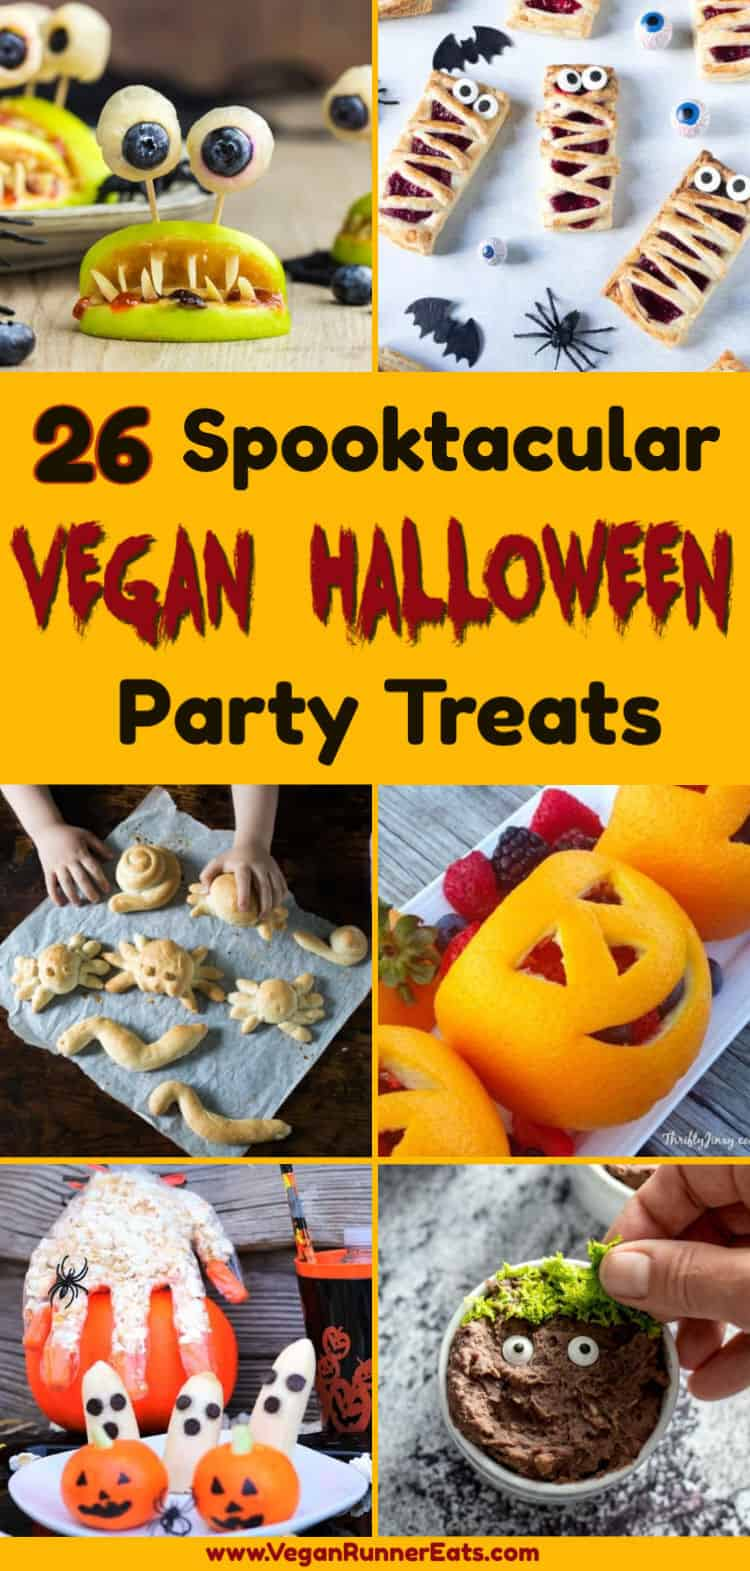 26 spooktacular vegan Halloween recipes: easy vegan appetizers, main course, and sweet treats for a fun Halloween party. | Vegan Runner Eats